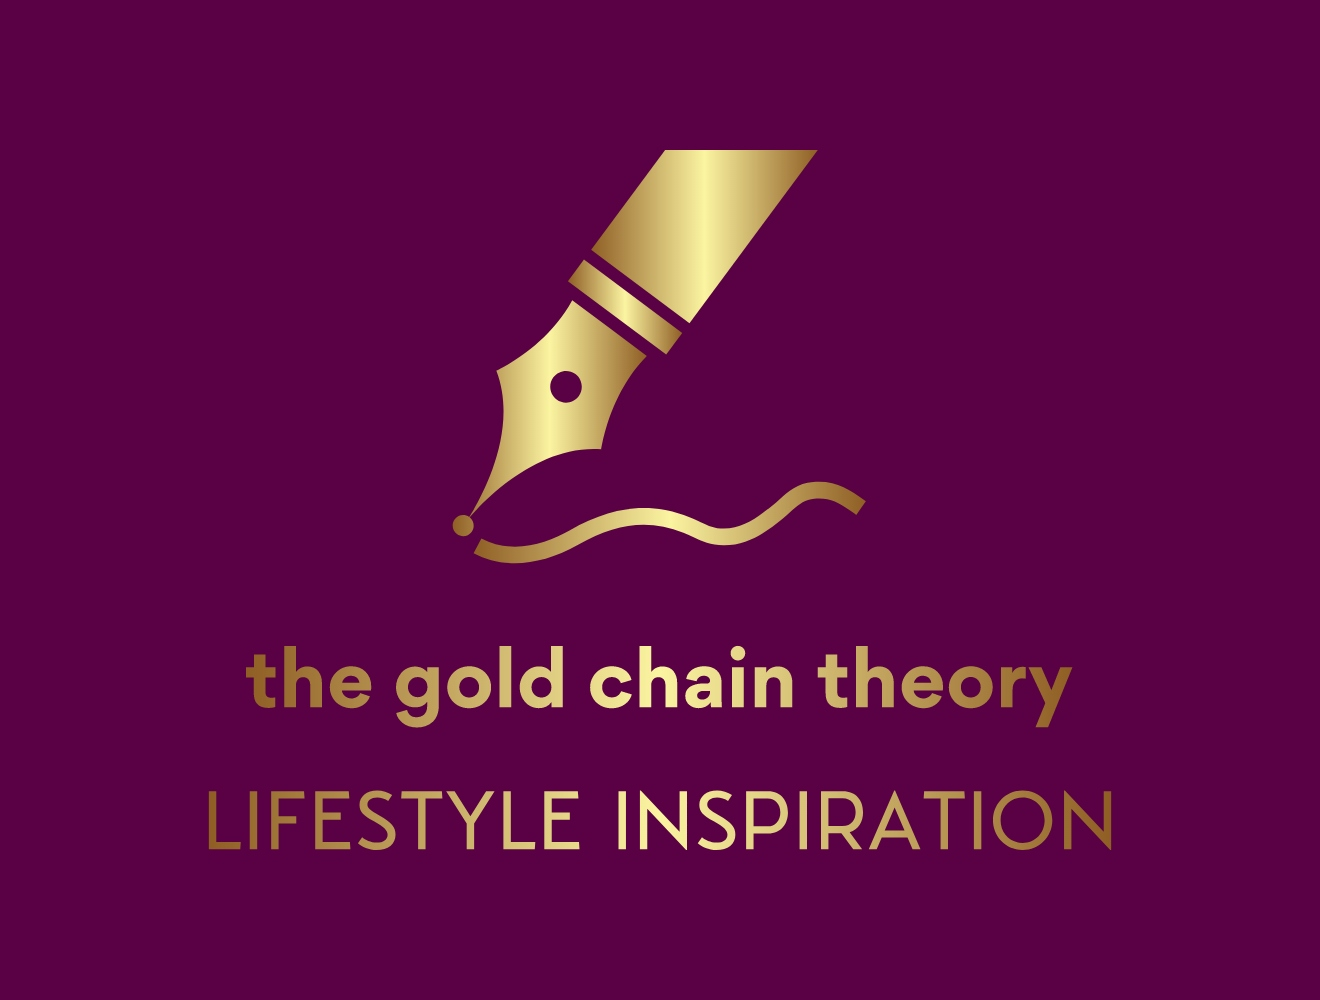 The Gold Chain Theory